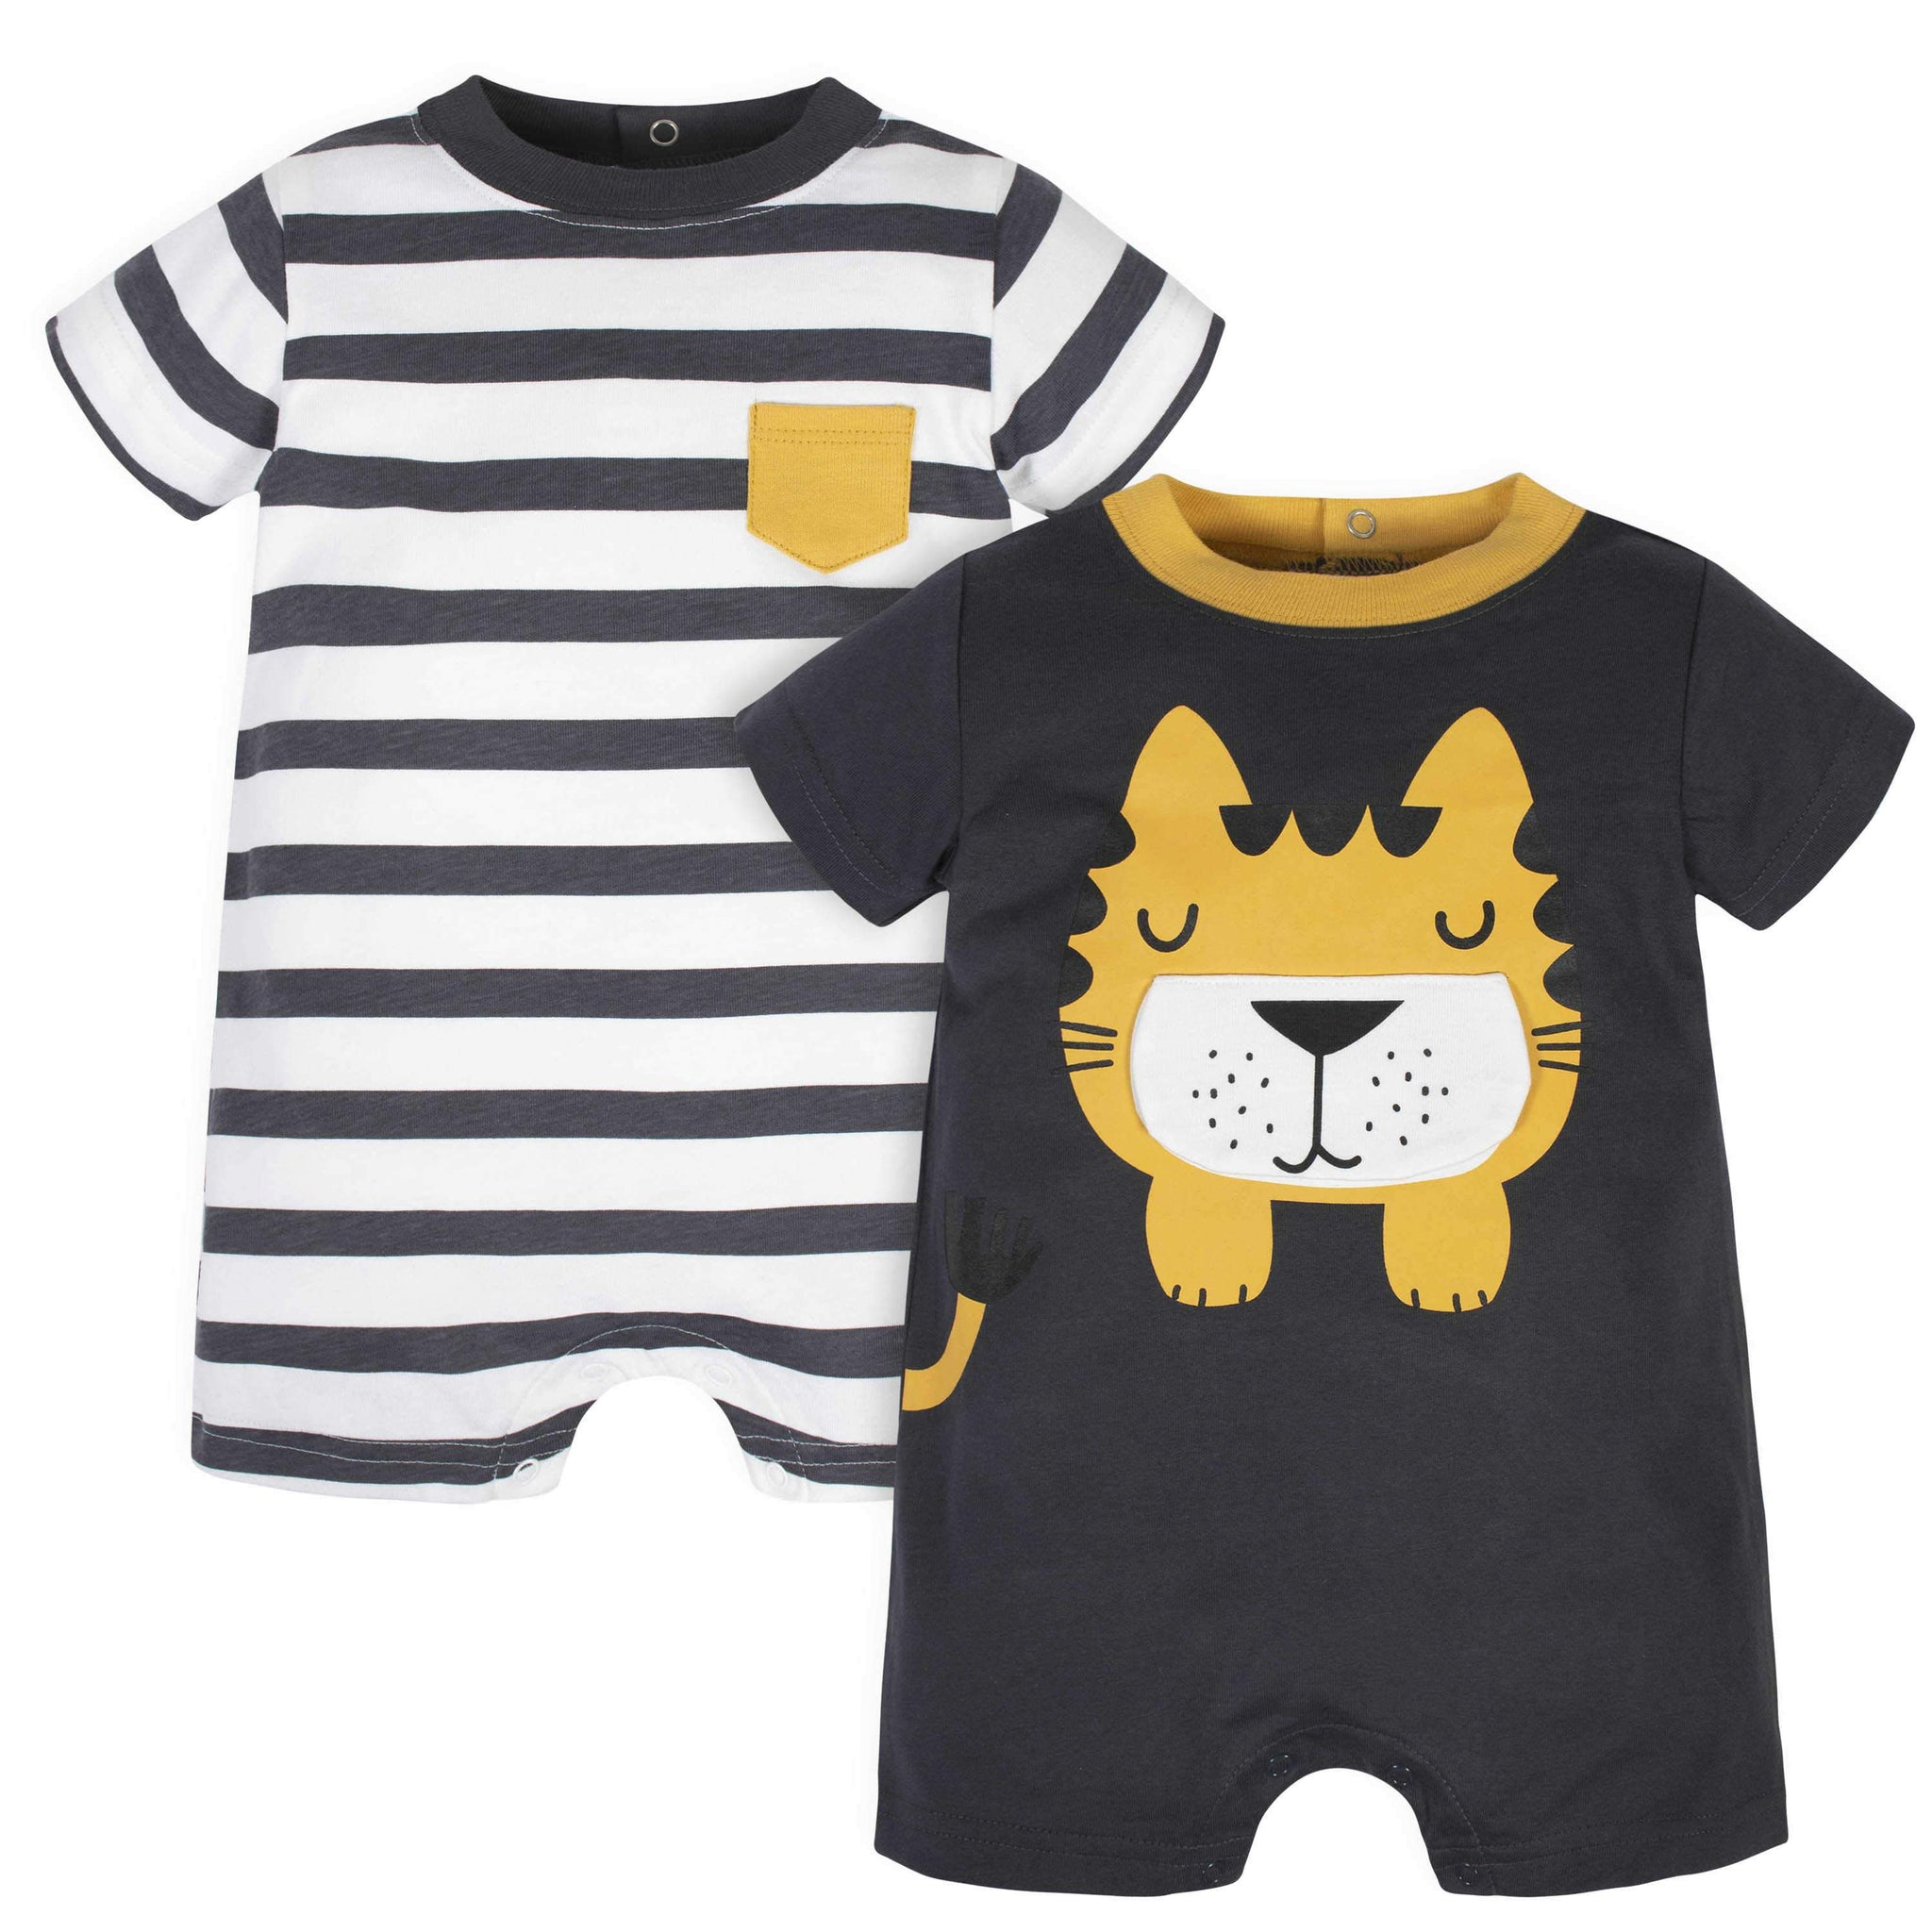 2-Pack Baby Boys Tiger Rompers